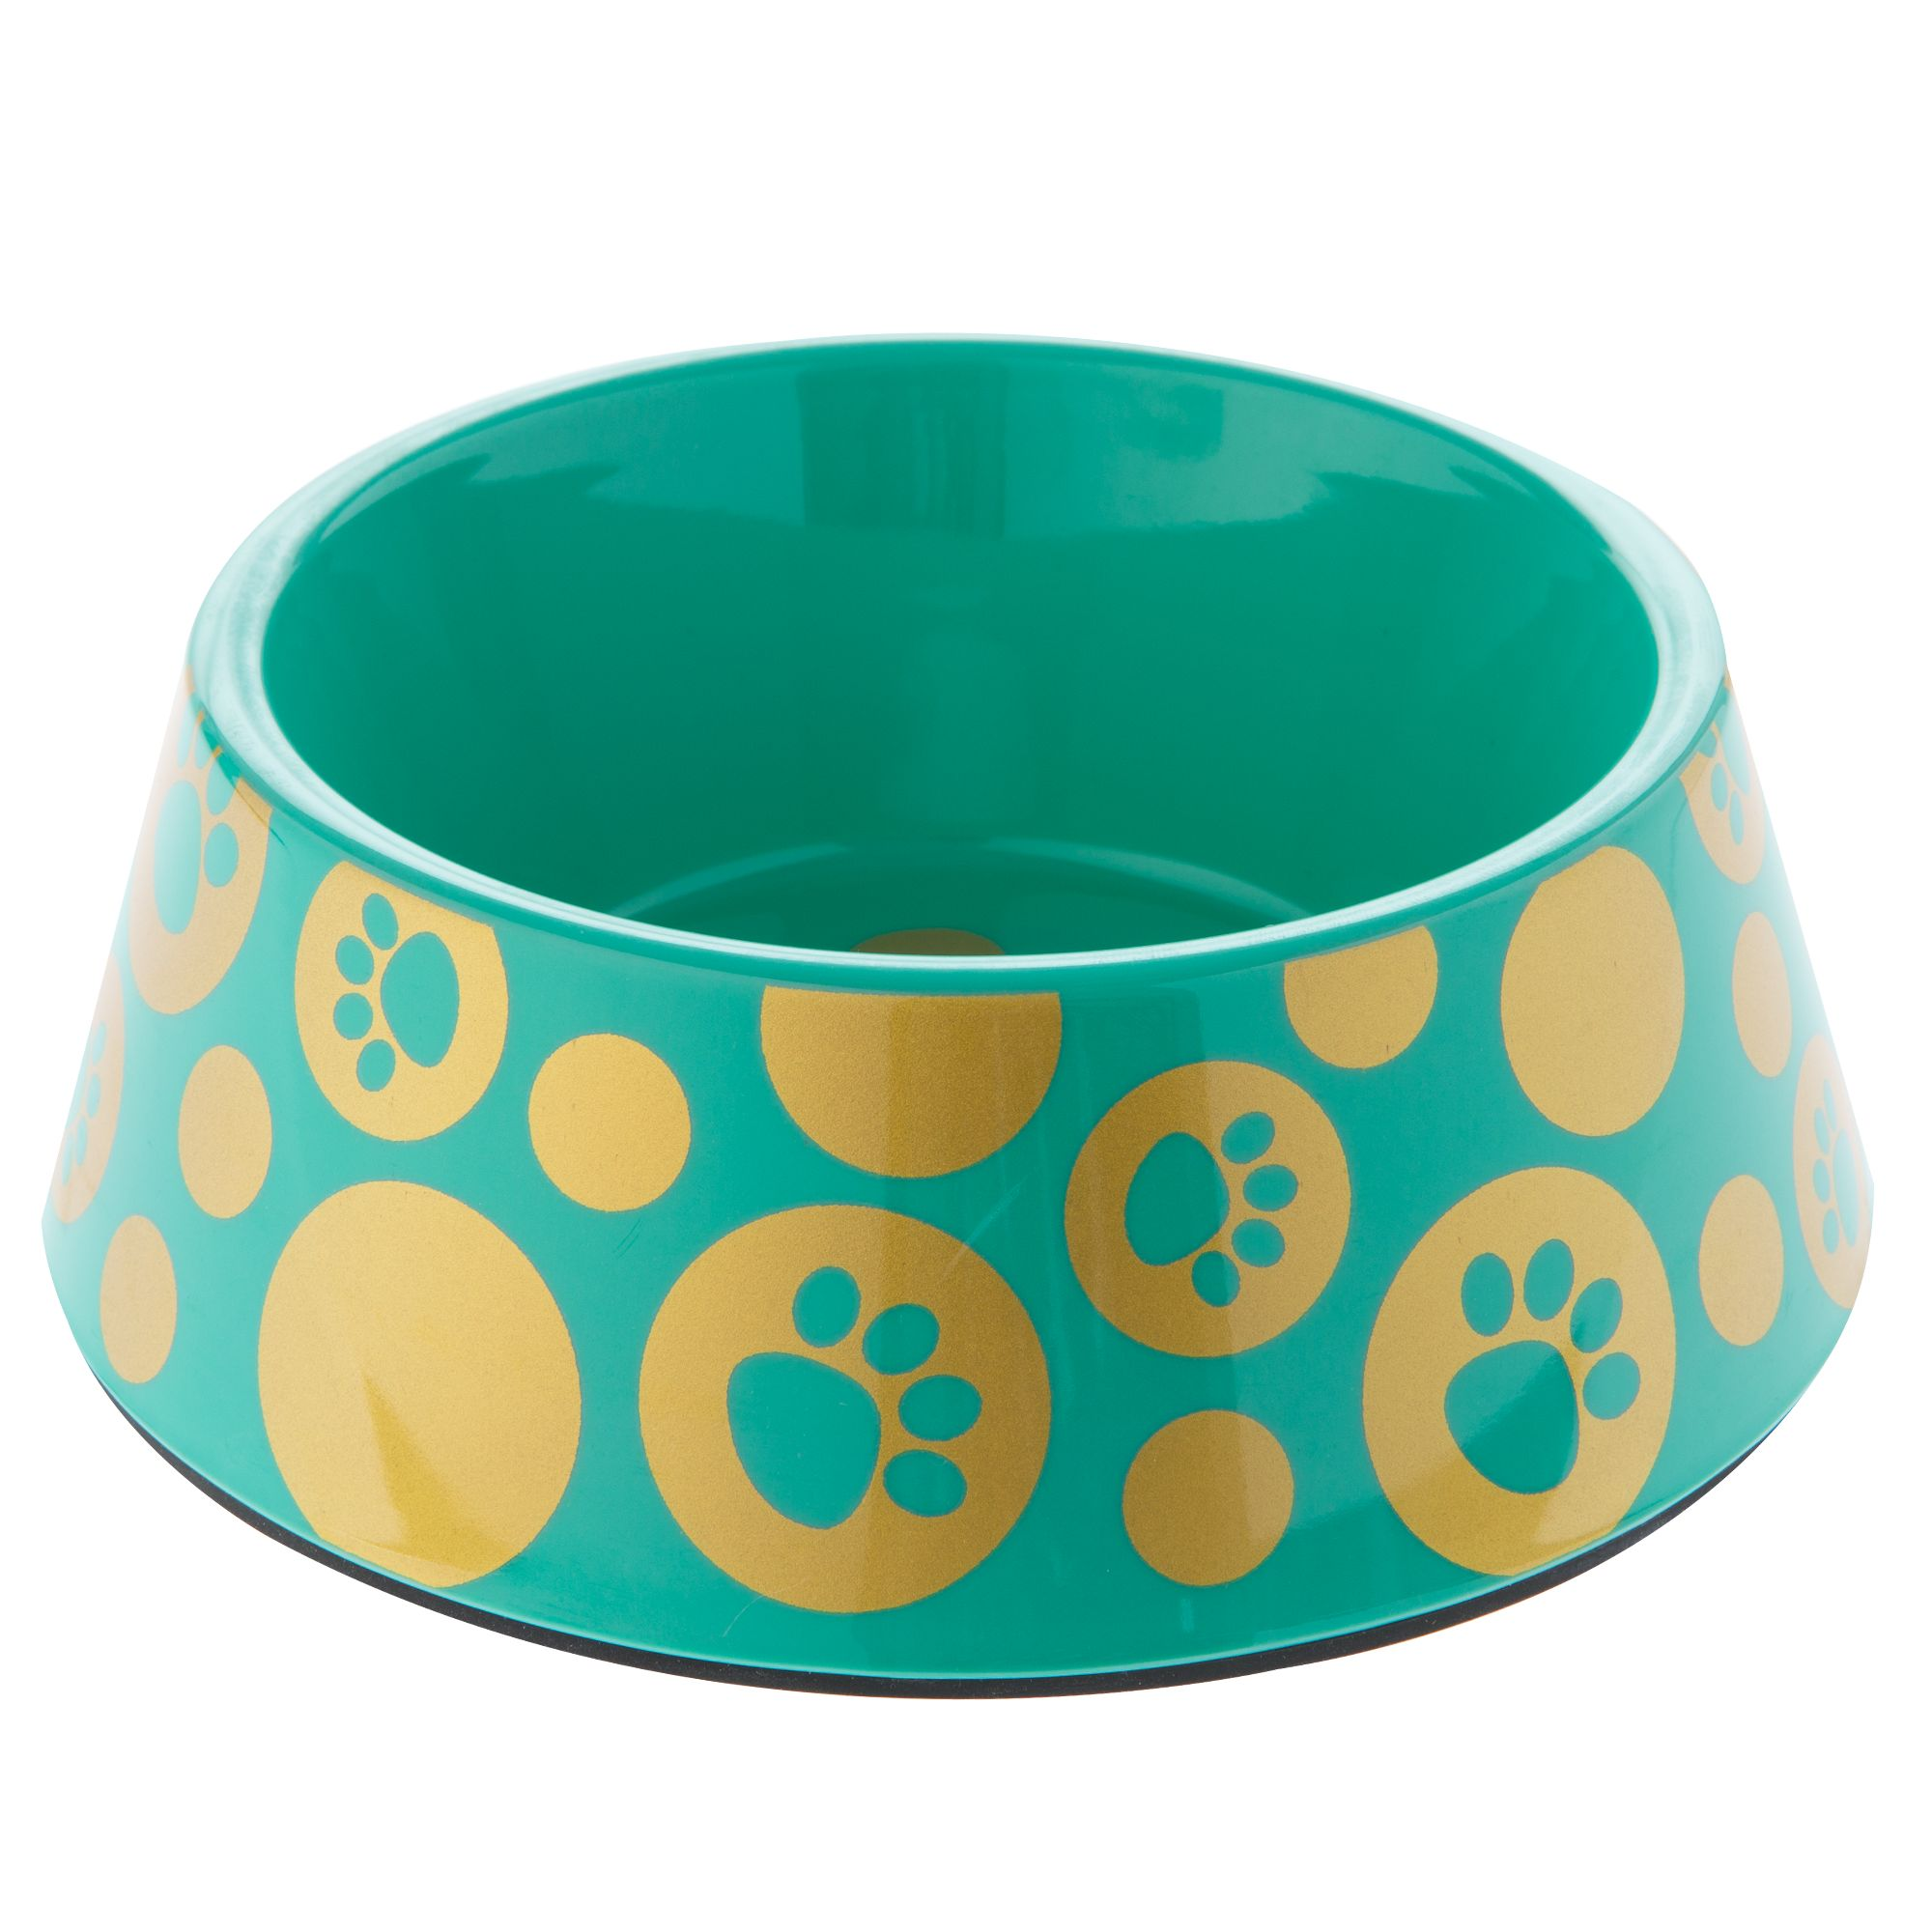 Top Paw® Glitz Paws Dog Bowl size: 3 C, Turquoise 5250219